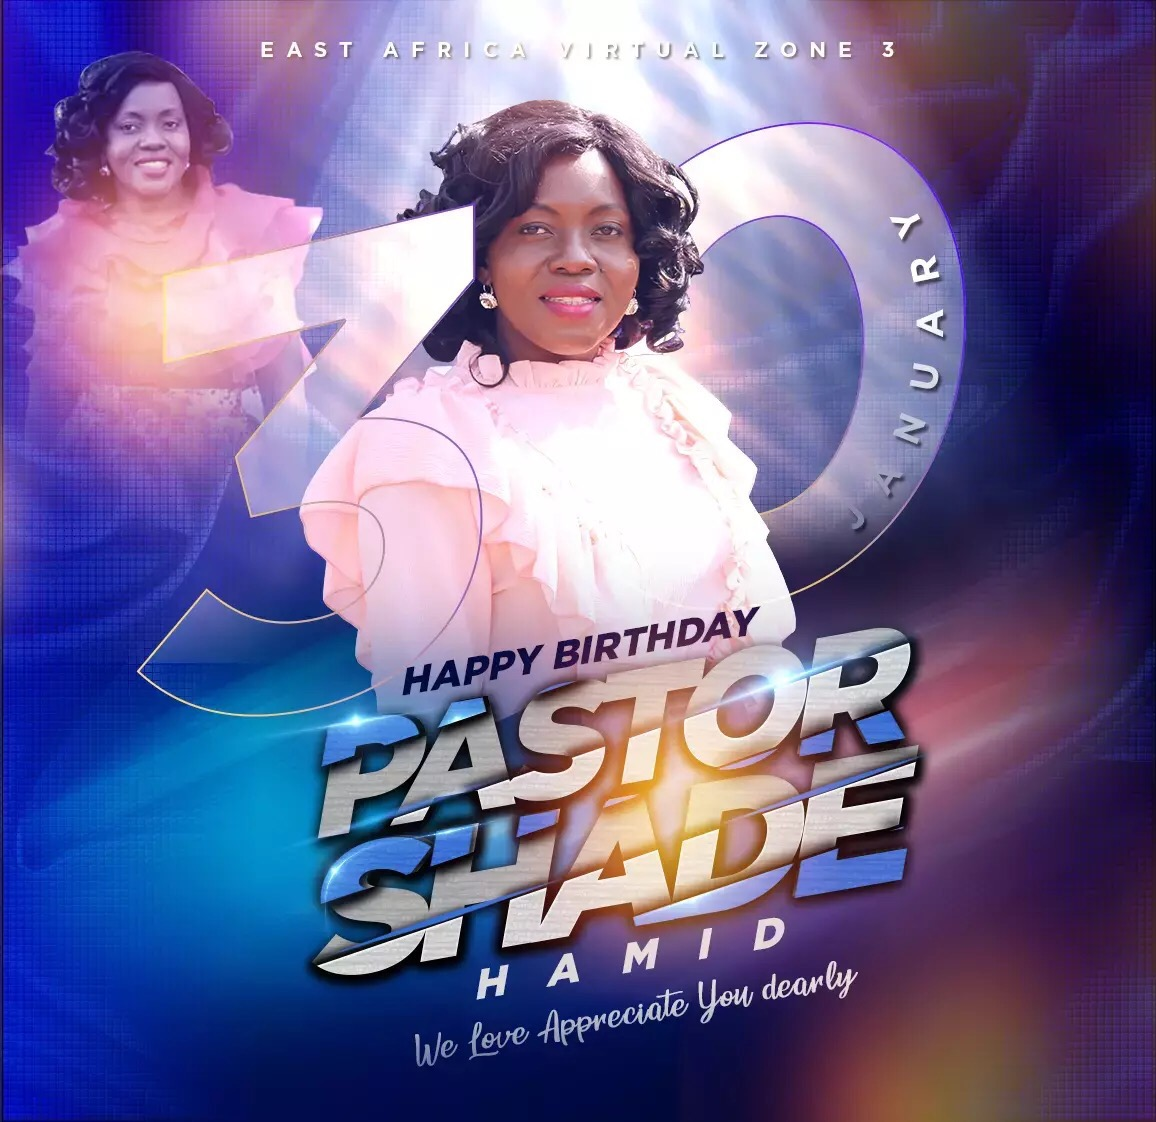 Happy Birthday Pastor Ma! I